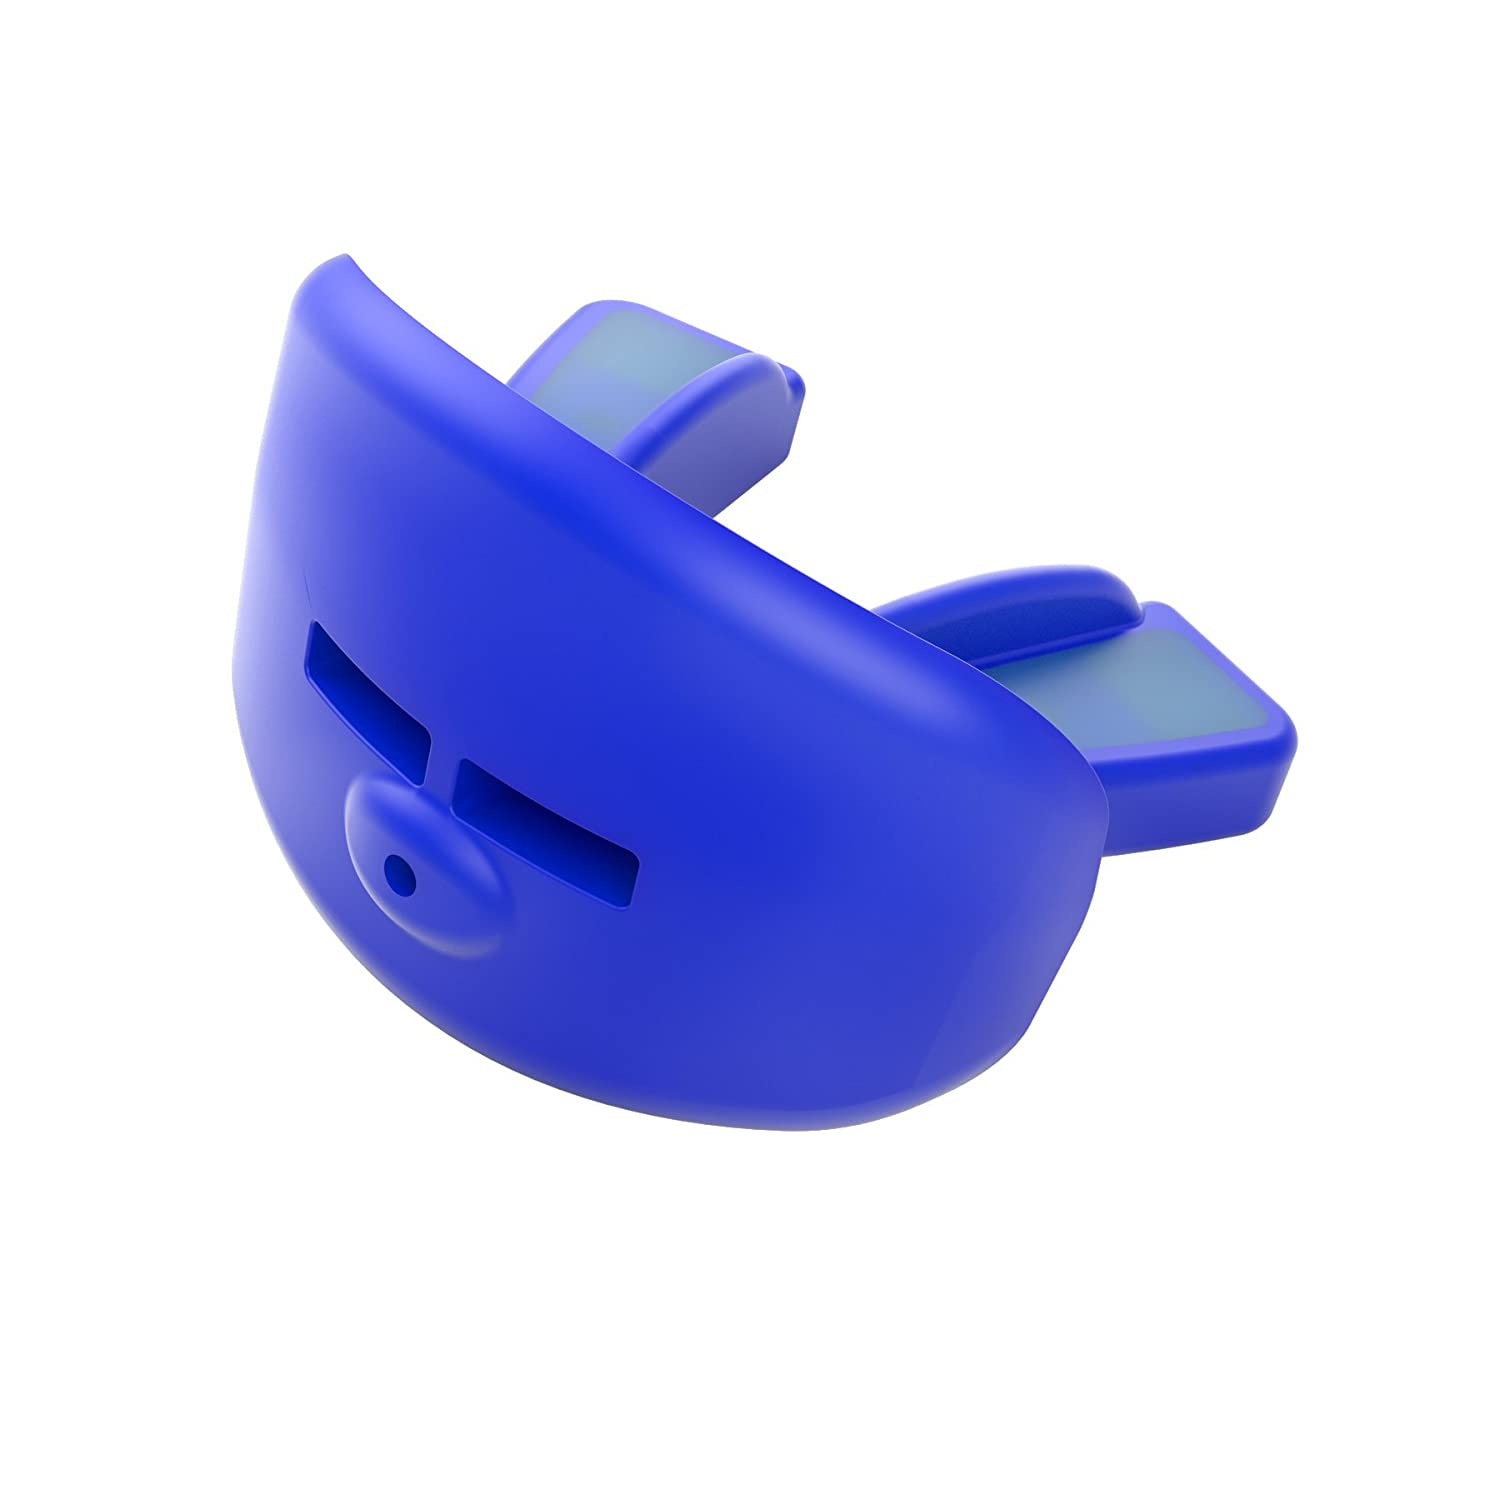 Shock Doctor Low Profile Lip Guard for Football, Adult & Youth, Now Offering Flavored Mouth Guards 340144A-Parent